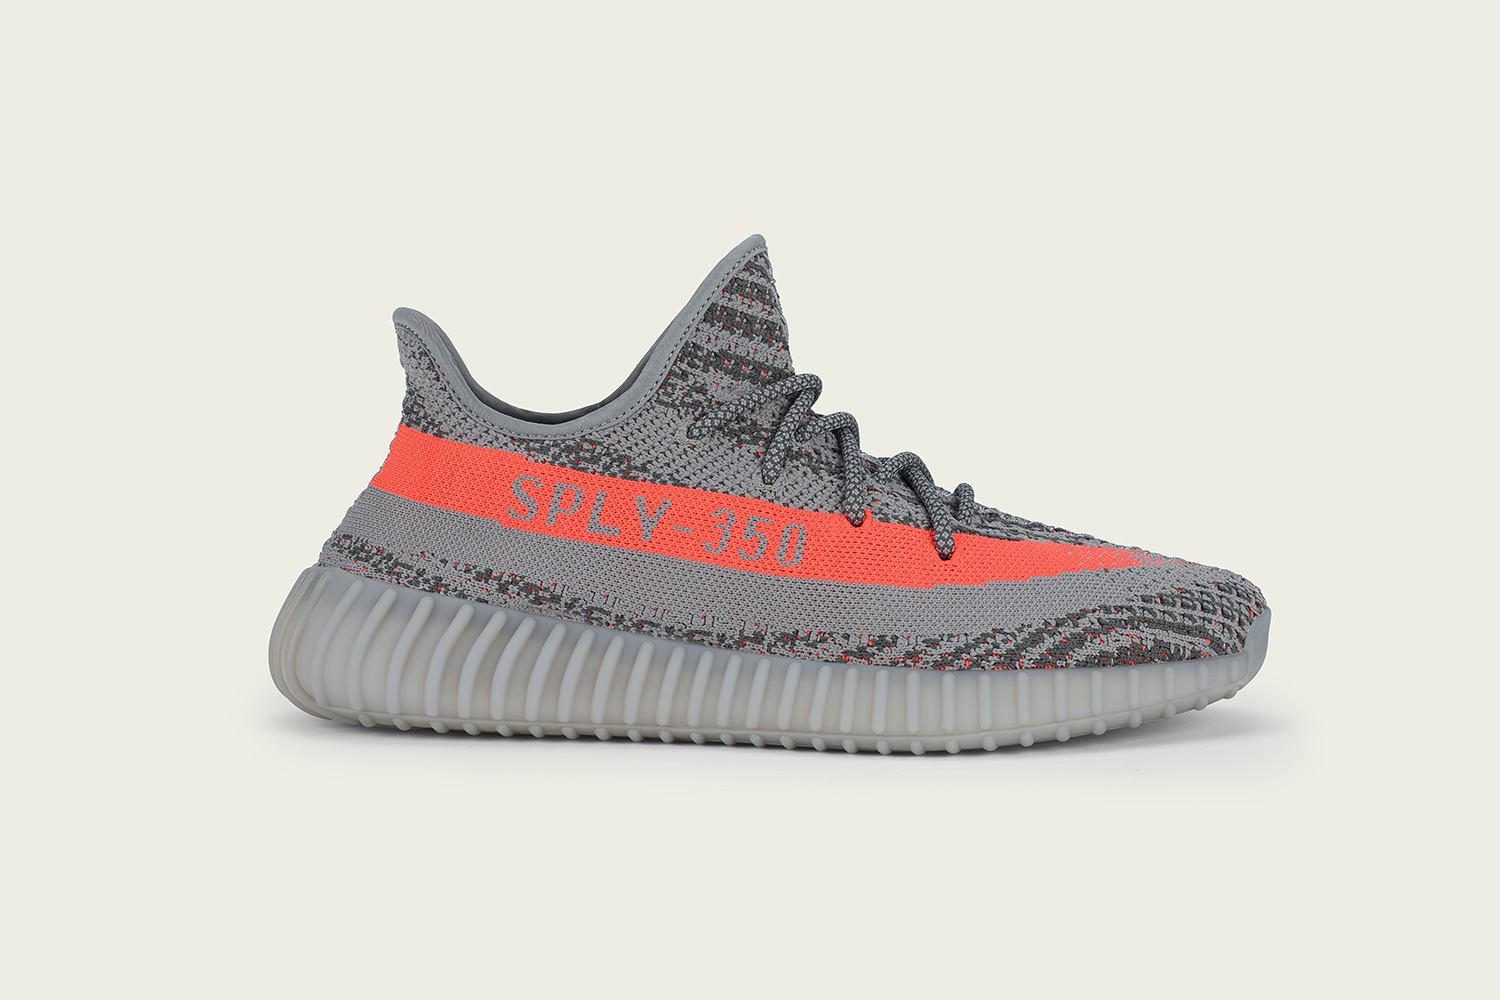 the latest 669cf 2689d adidas Yeezy 350 Boost V2 Steel Grey